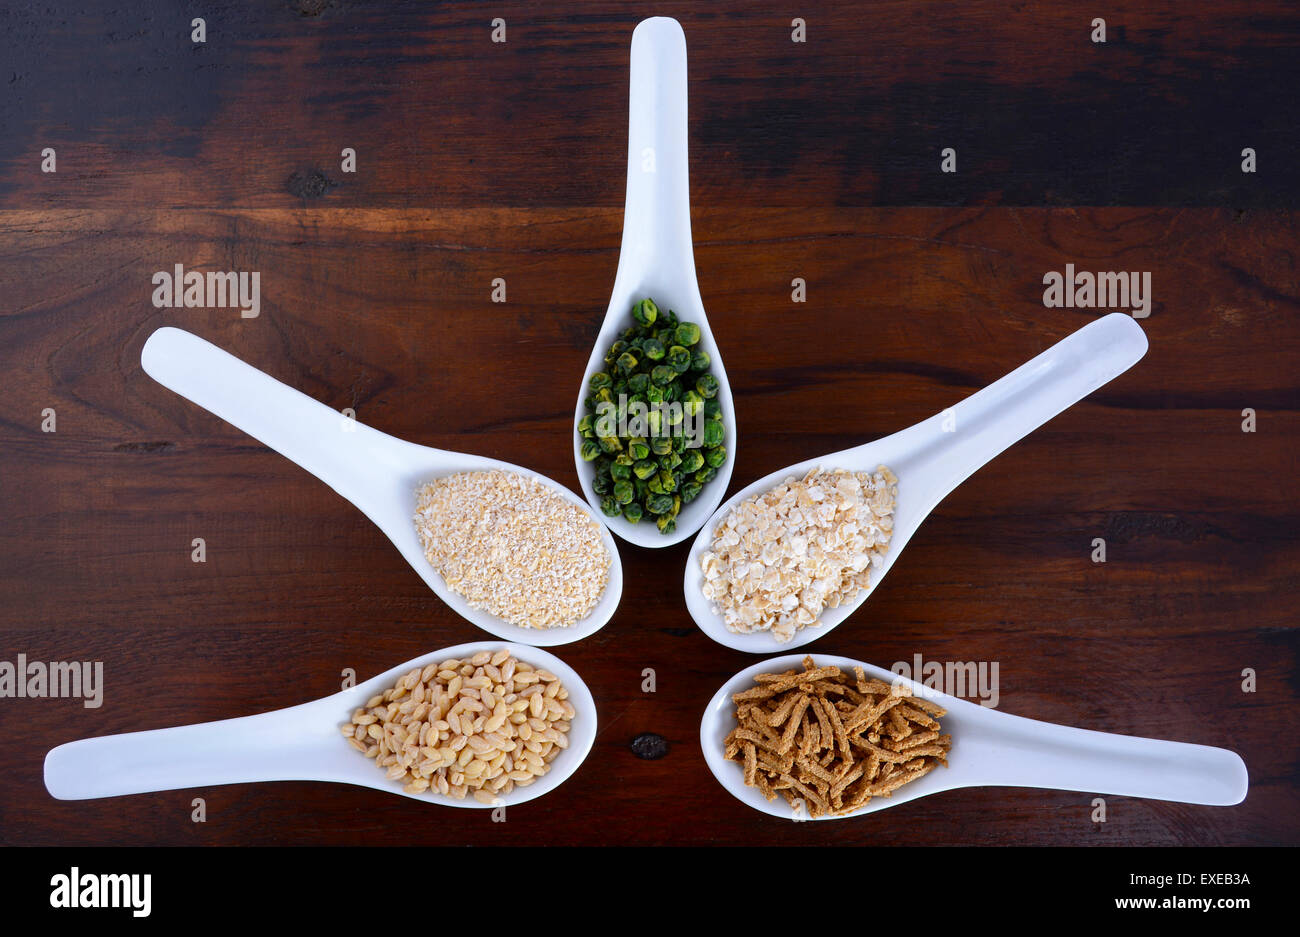 Healthy High Fiber Prebiotic Grains in serving spoons, including wheat bran cereal, oat flakes, dried legume peas, - Stock Image